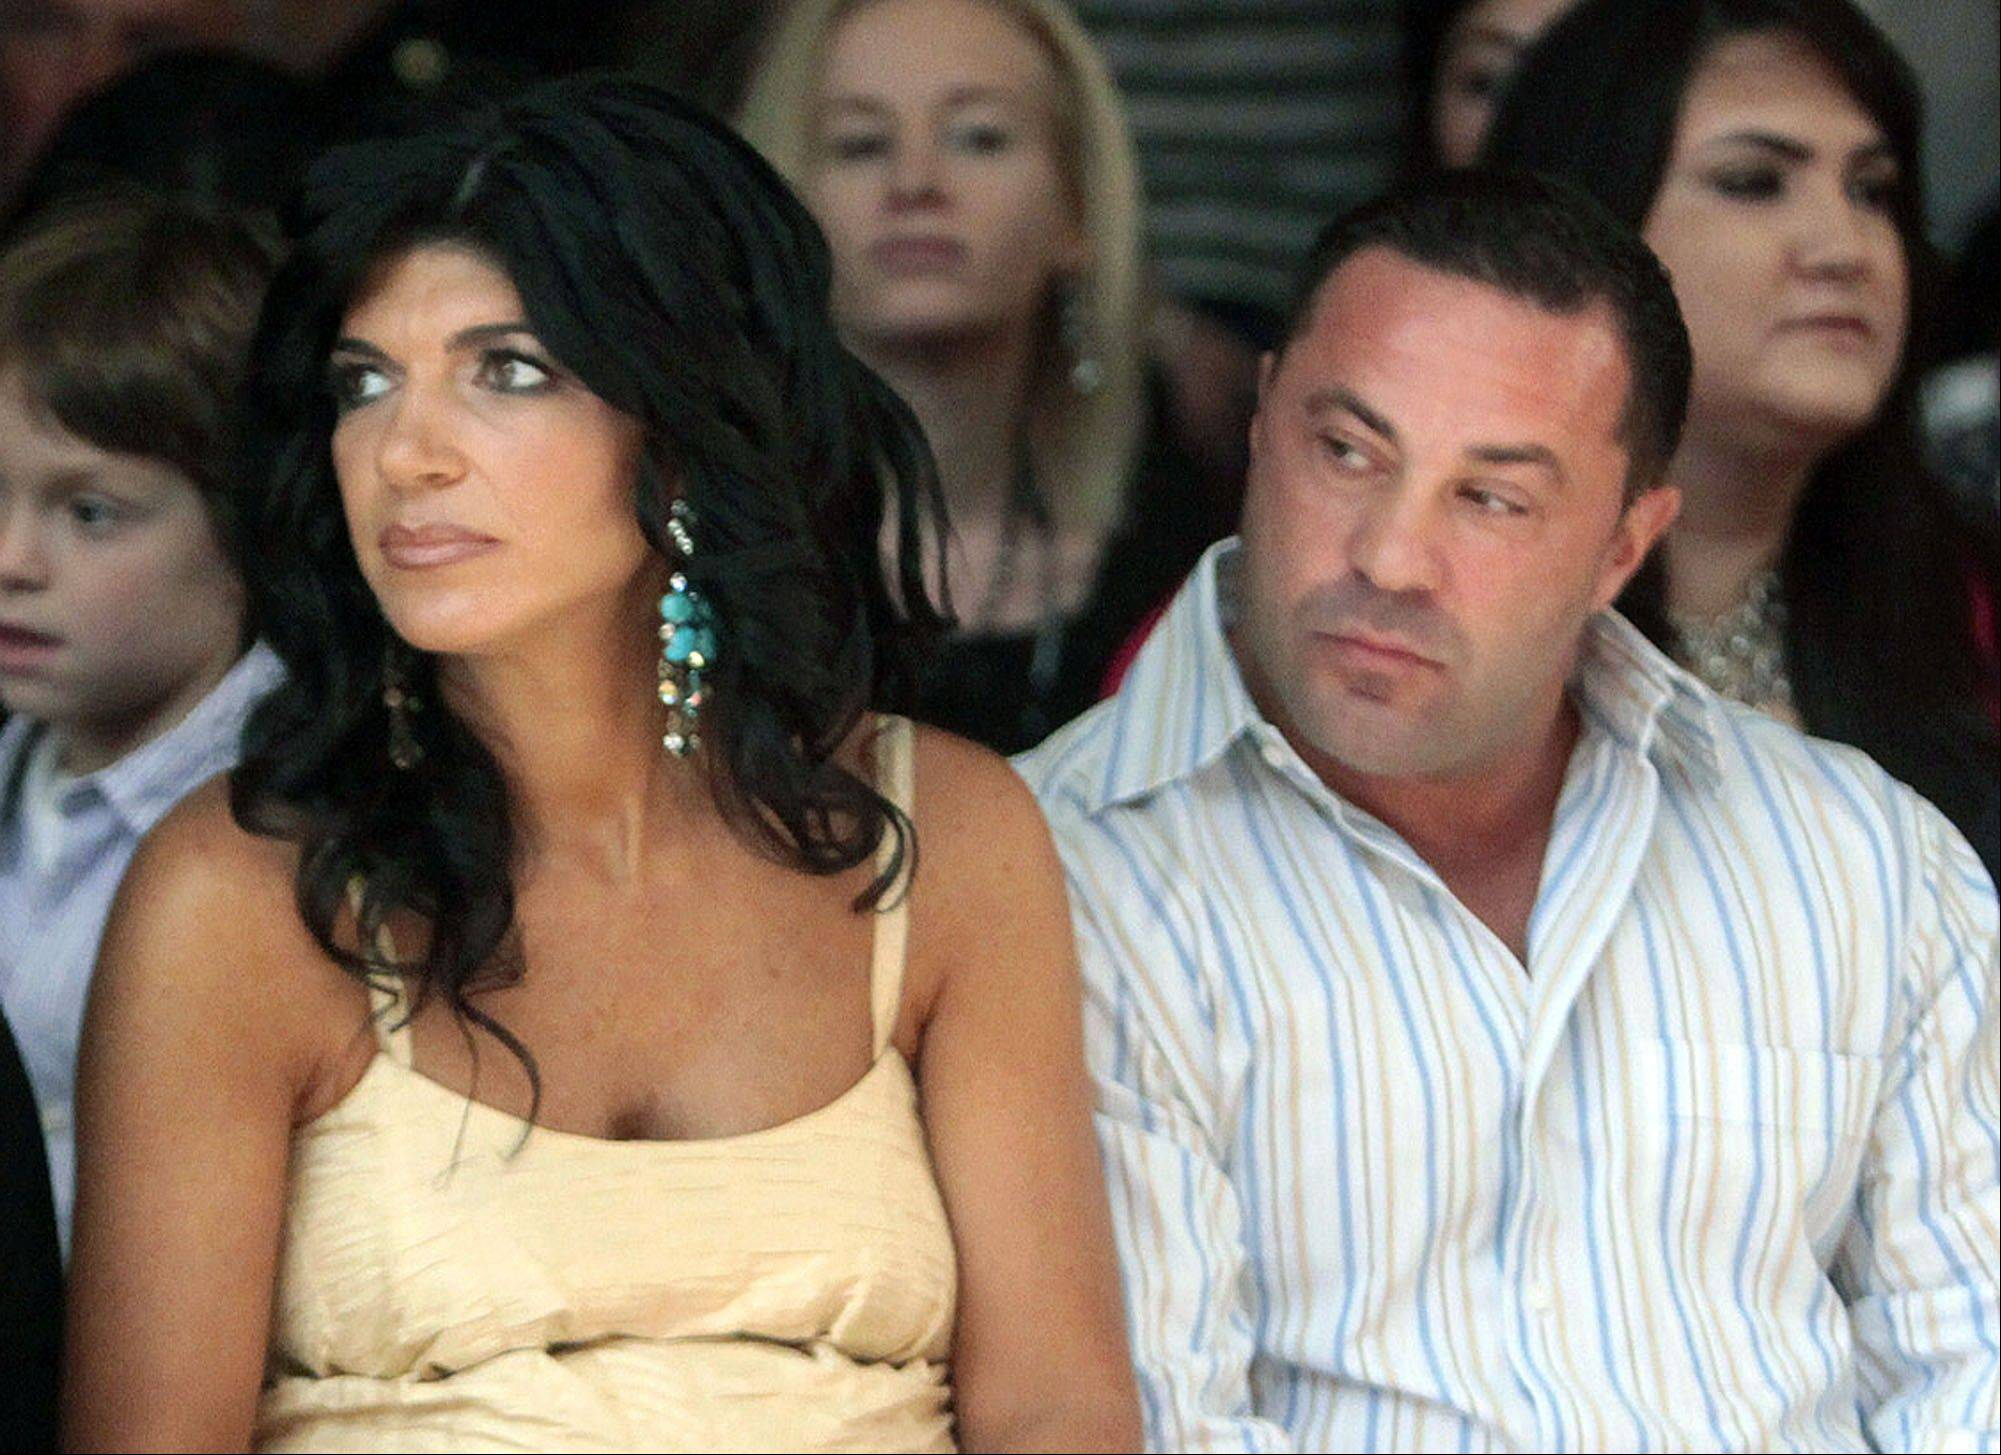 "This Sept. 13, 2009 file photo originally released by Oral-B Pulsonic shows ""Real Housewives of New Jersey"" stars, Teresa Giudice, left, and her husband Joe Giudice at the Caravan Fashion Show sponsored by Oral-B Pulsonic in New York. Teresa and Giuseppe �Joe� Giudice were charged in a 39-count indictment handed up Monday in Newark, N.J. The two are accused of submitting fraudulent mortgage and other loan applications from 2001 through 2008, a year before their show debuted on Bravo. Prosecutors say they made false claims about their employment status and salaries."